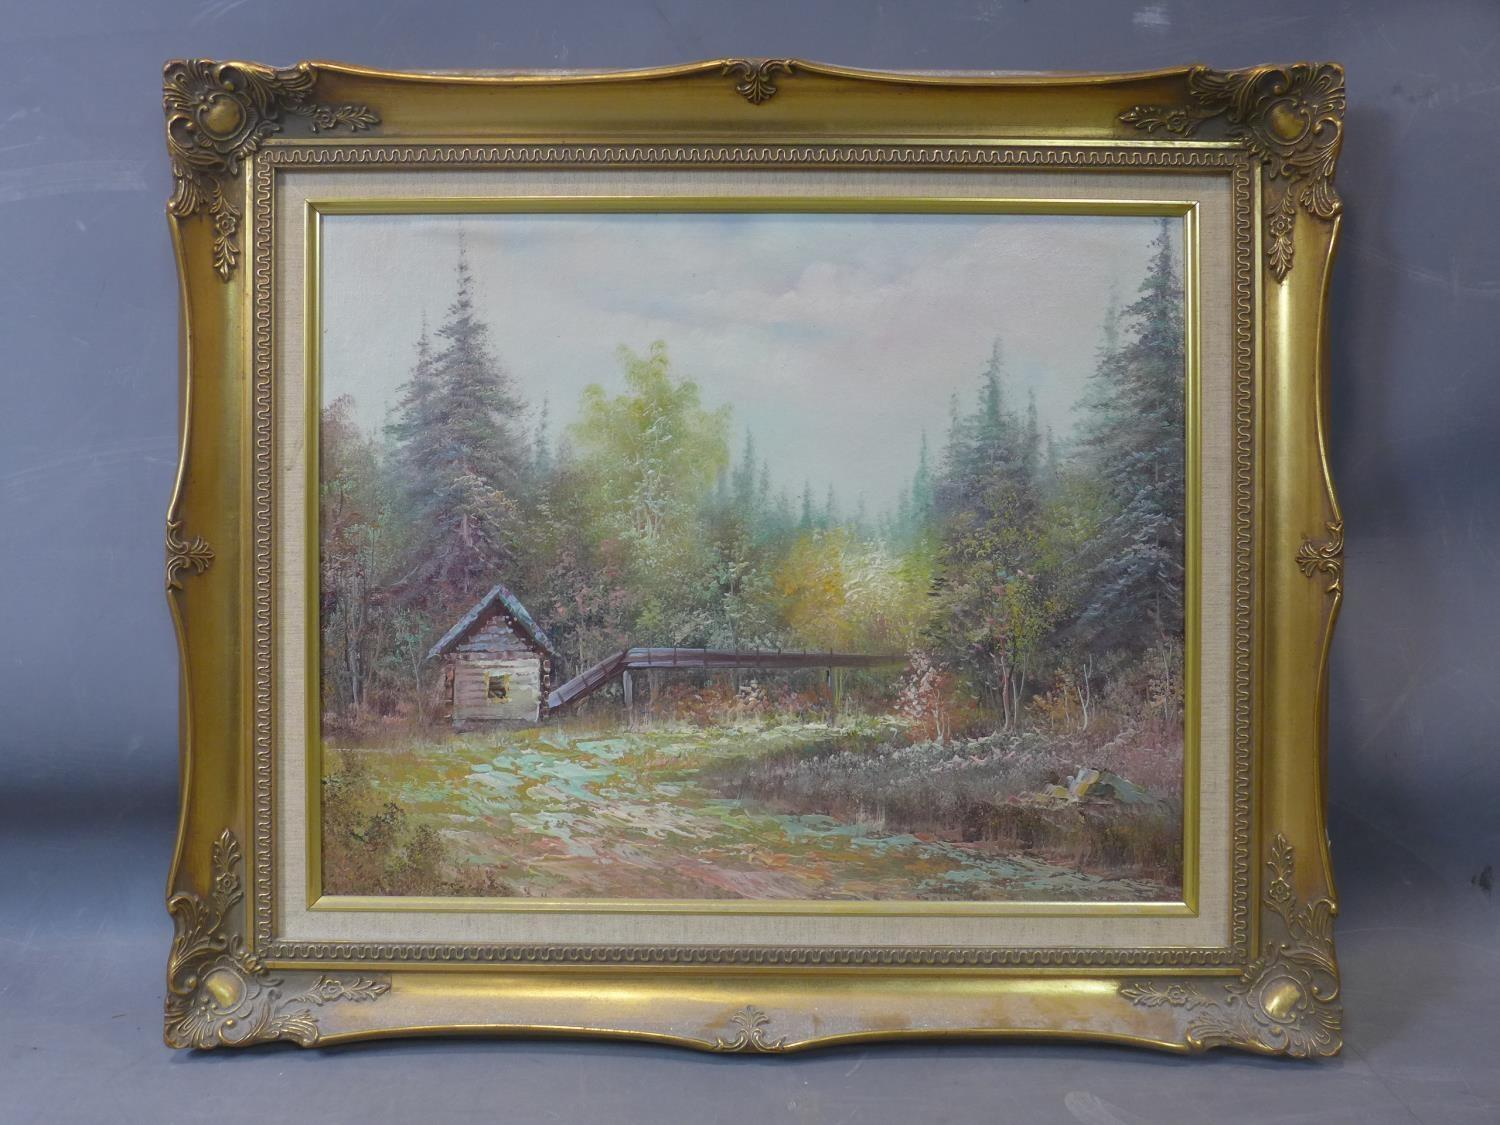 Lot 13 - 20th century school, landscape scene with cottage in a forest, oil on board, in gilt frame, 39 x